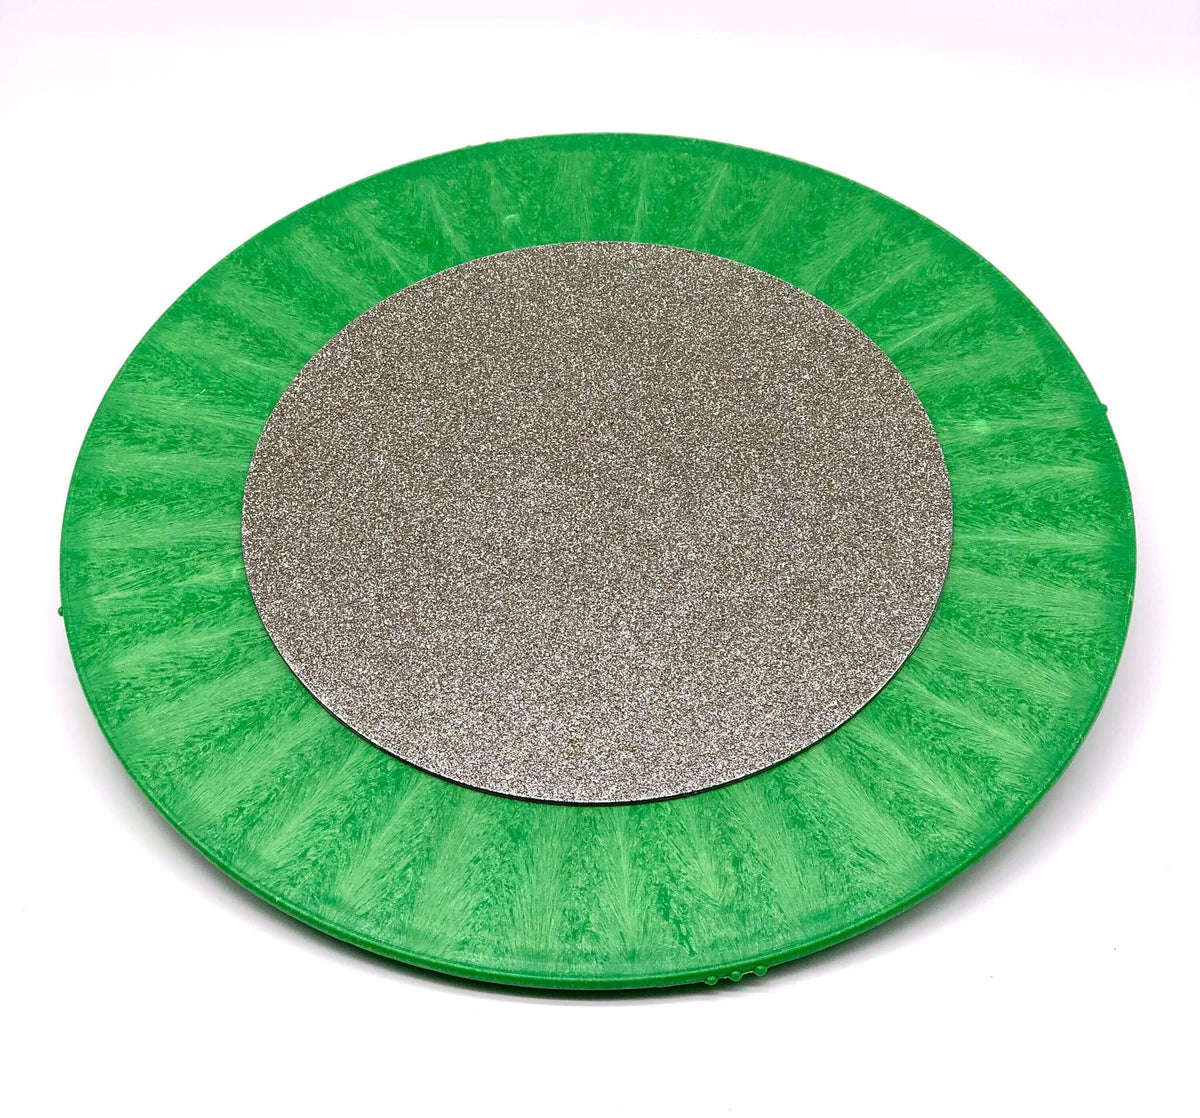 "DiamondCore 8 inch Diamond Grinding Disc on 12"" Bat (sold separately)"